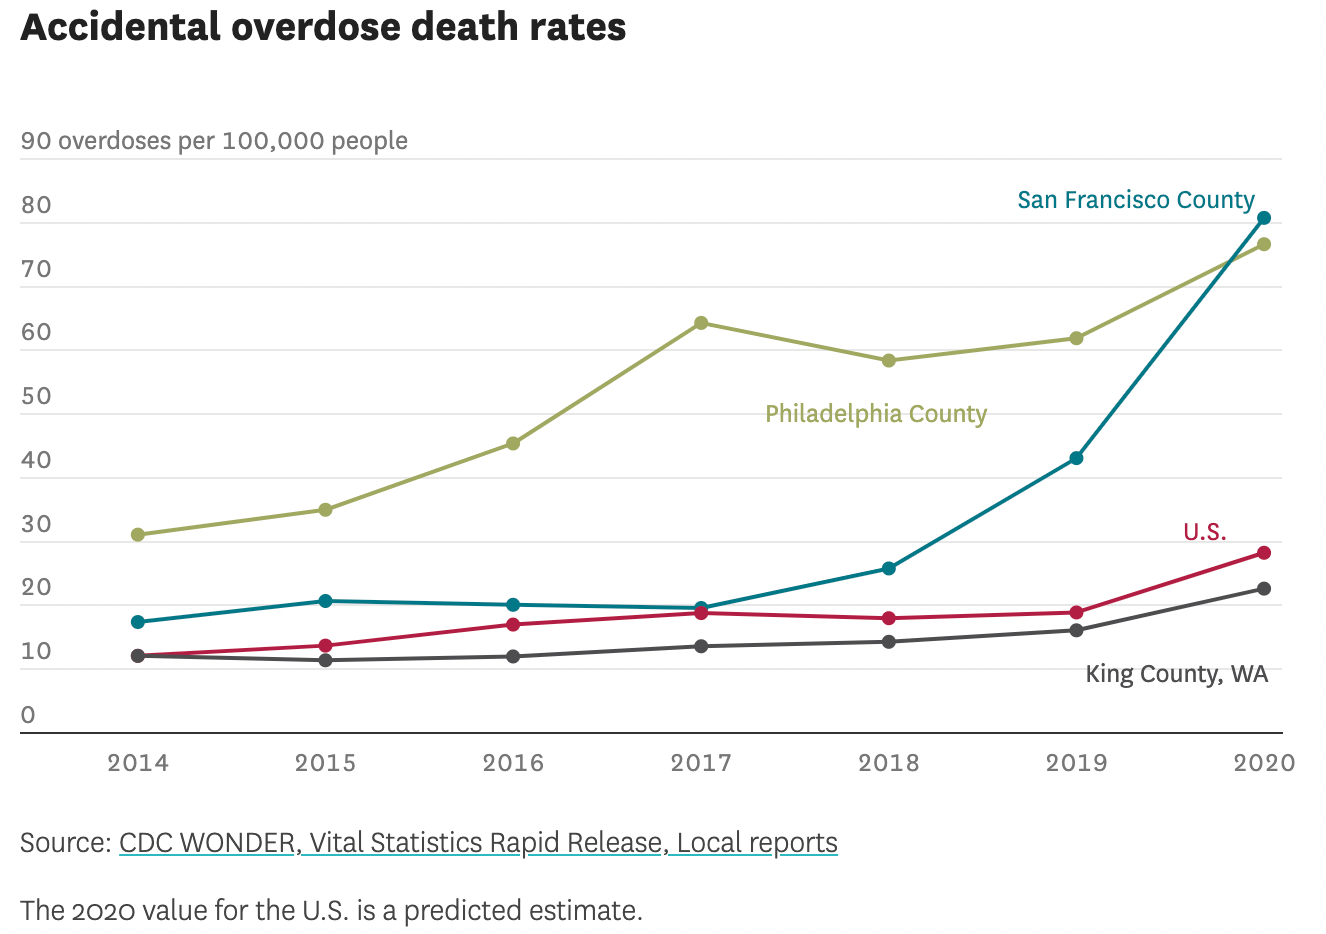 A graph showing an increase in 20 overdoses per 100,000 people in SF in 2017 to 80 per 100,000 in 2020. Philadelphia County, King County, and he US rates are also shown.